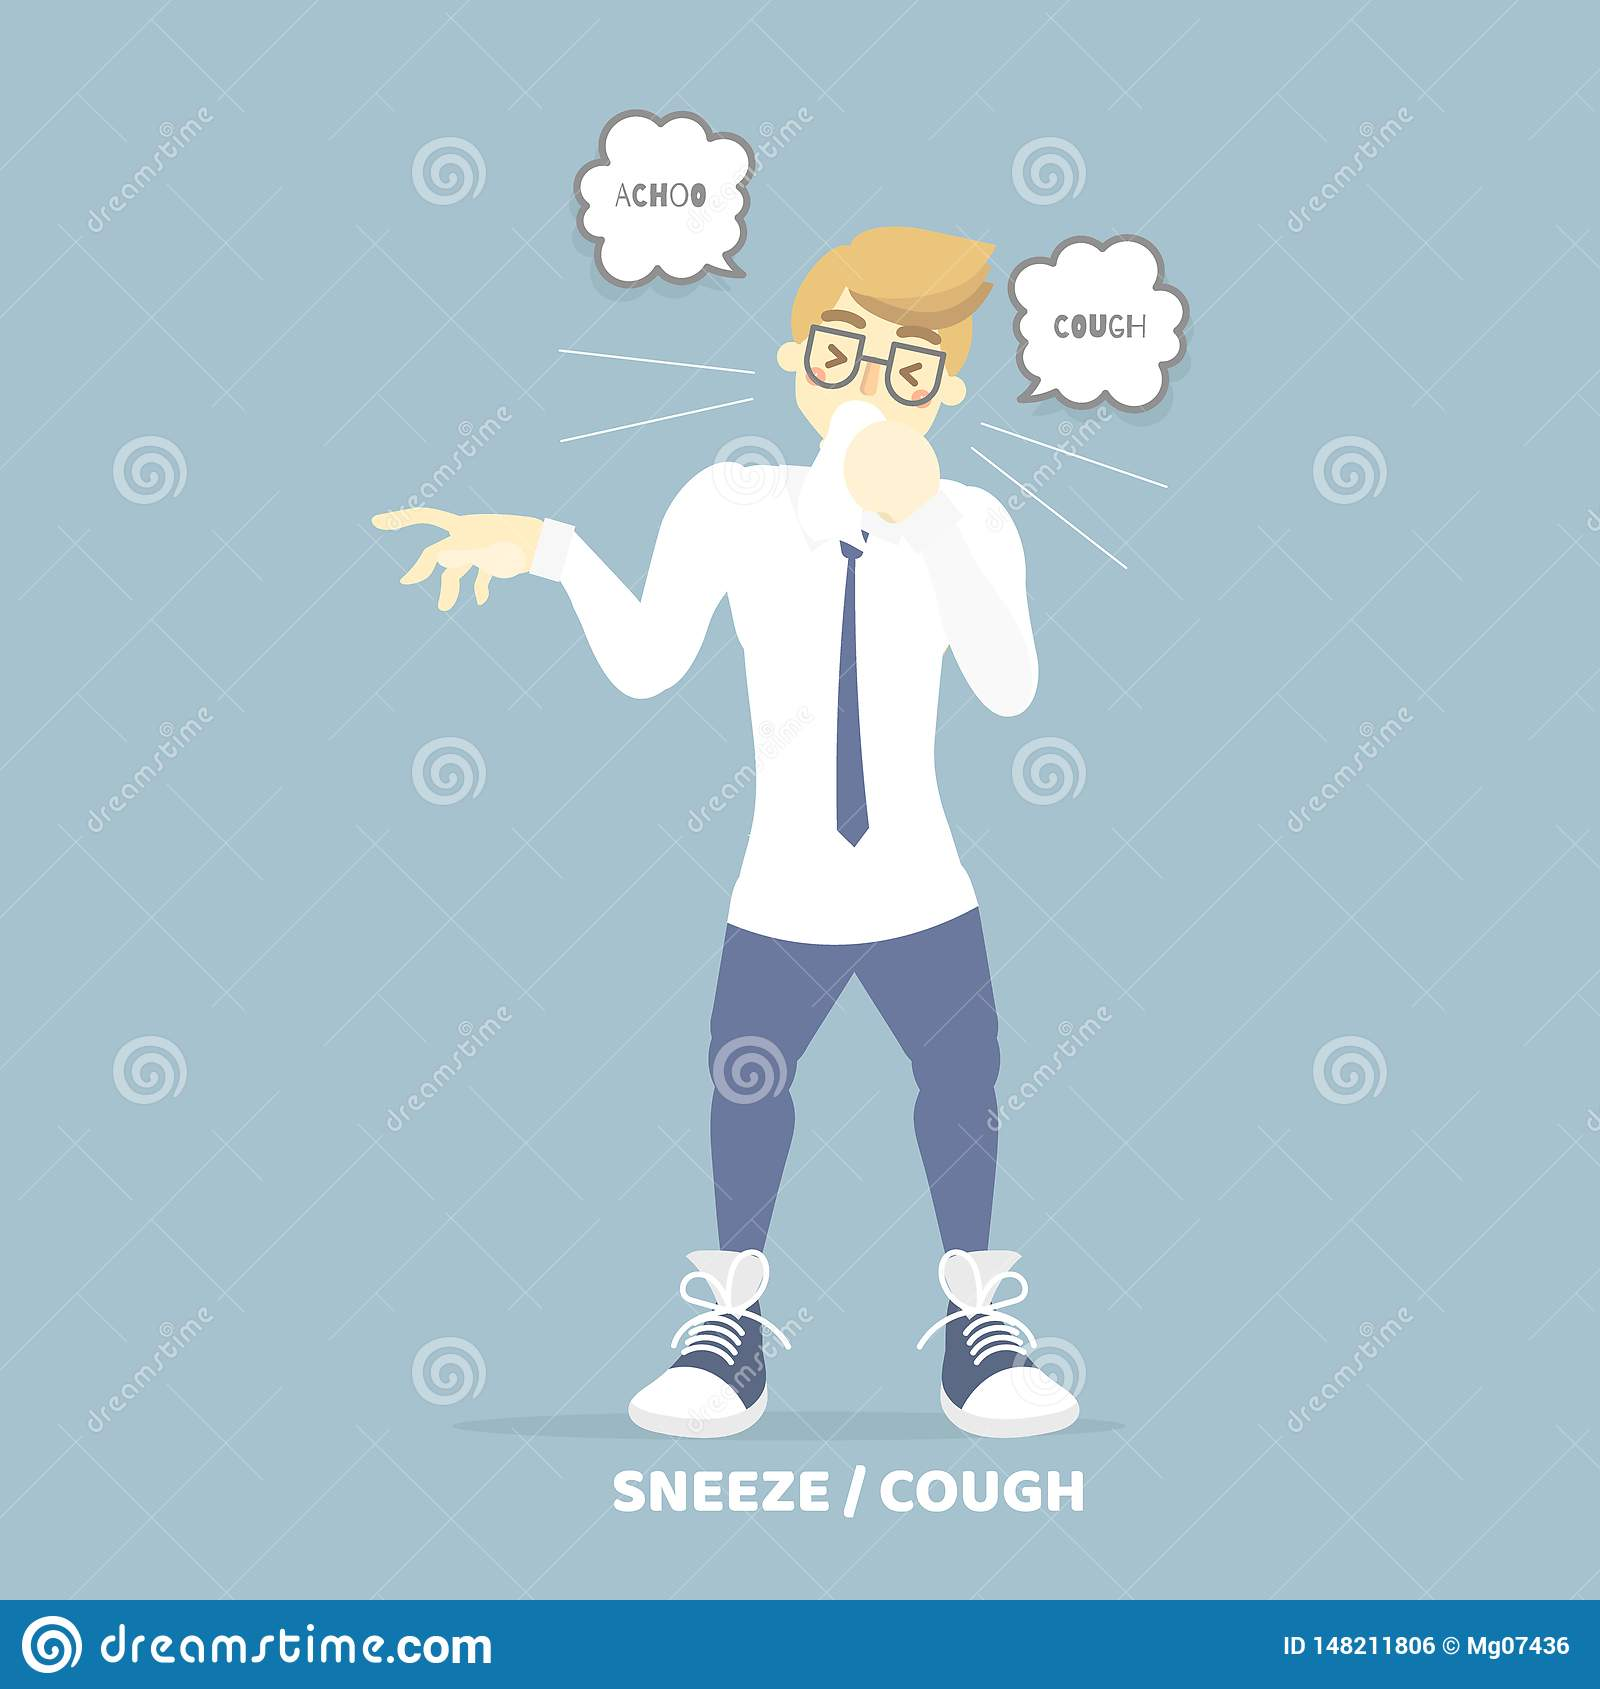 Man coughing sneezing, health care, pollen allergy, air pollution disease symptoms concept